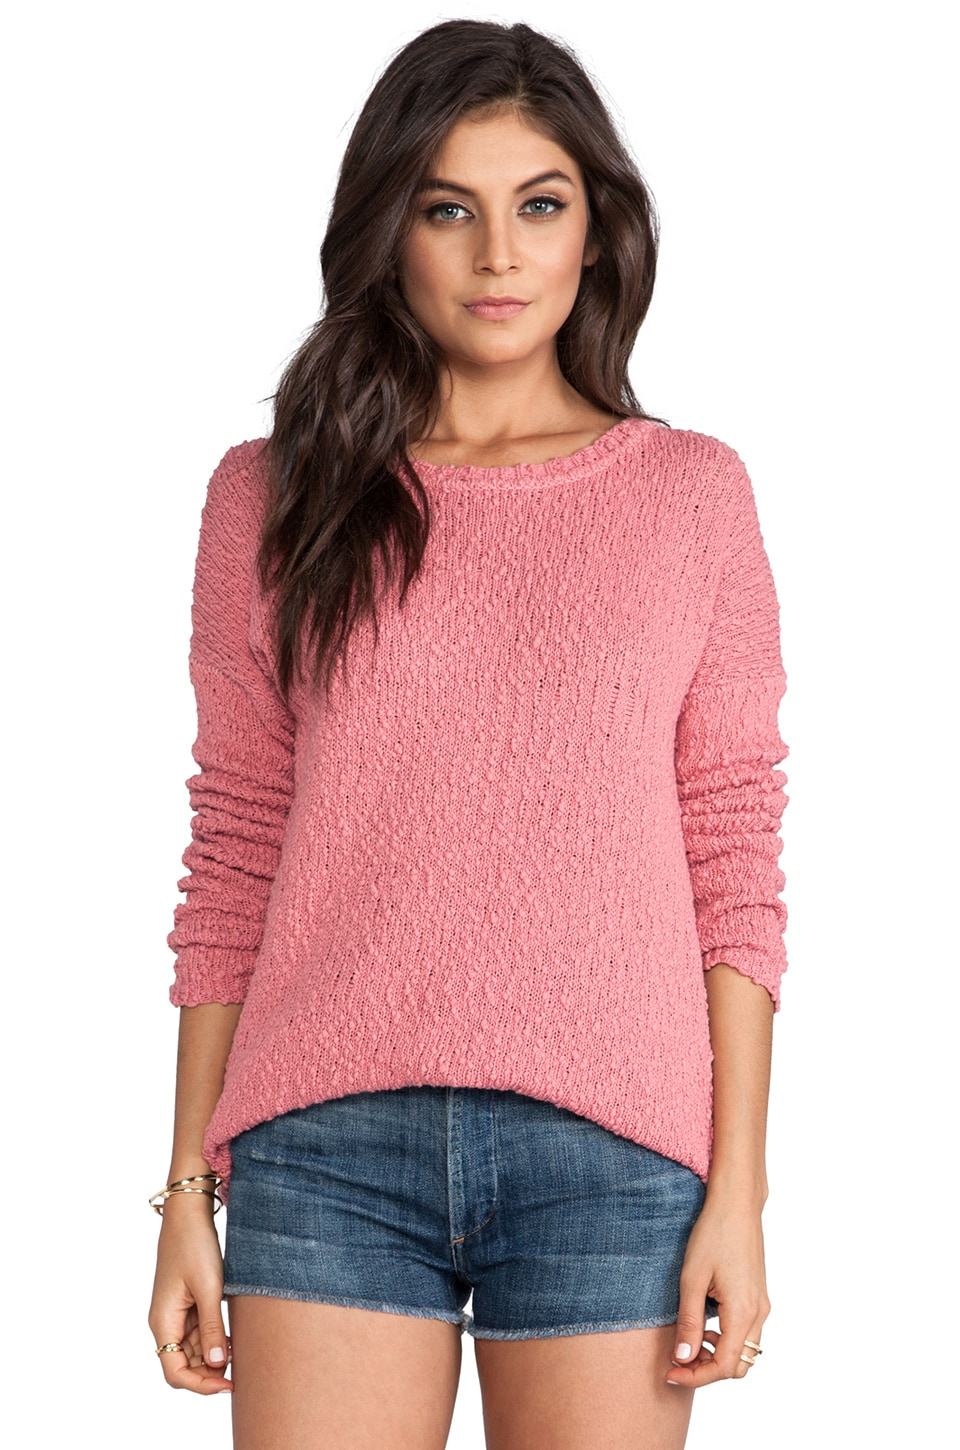 BB Dakota Auburn Oversized Sweater in Cheeky